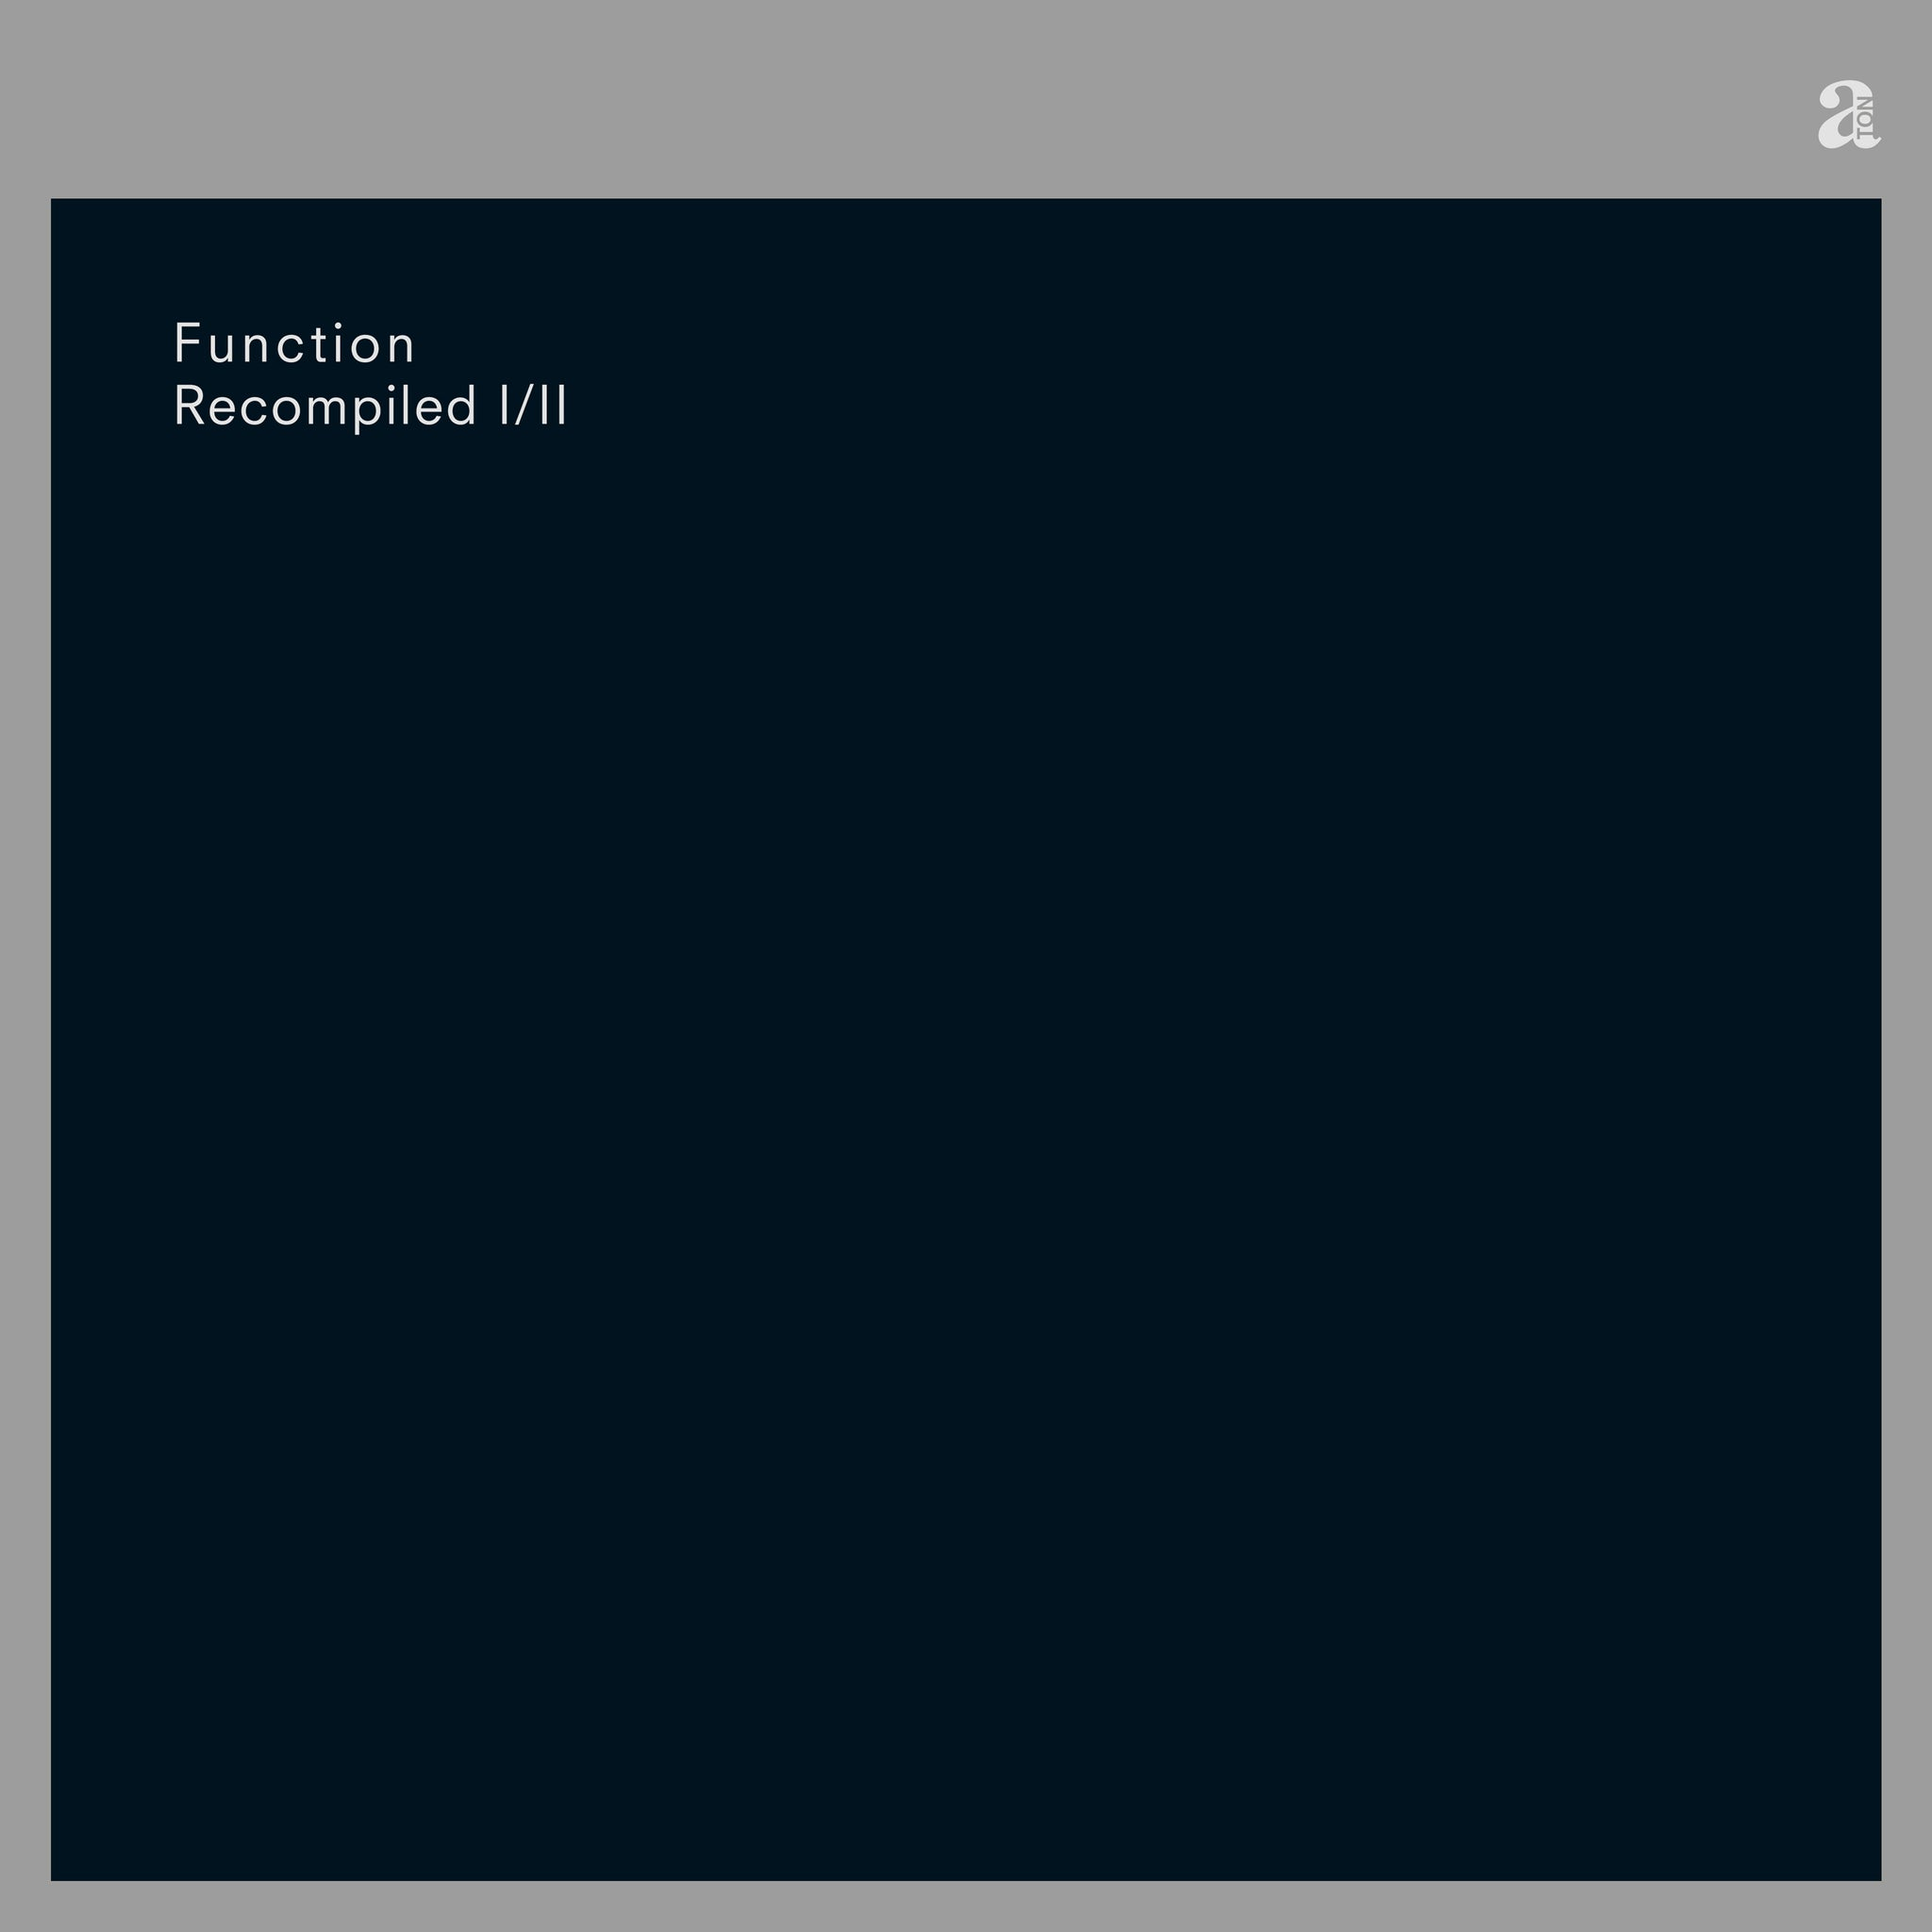 Function - Recompiled I/II DoLP - Vinylhouse